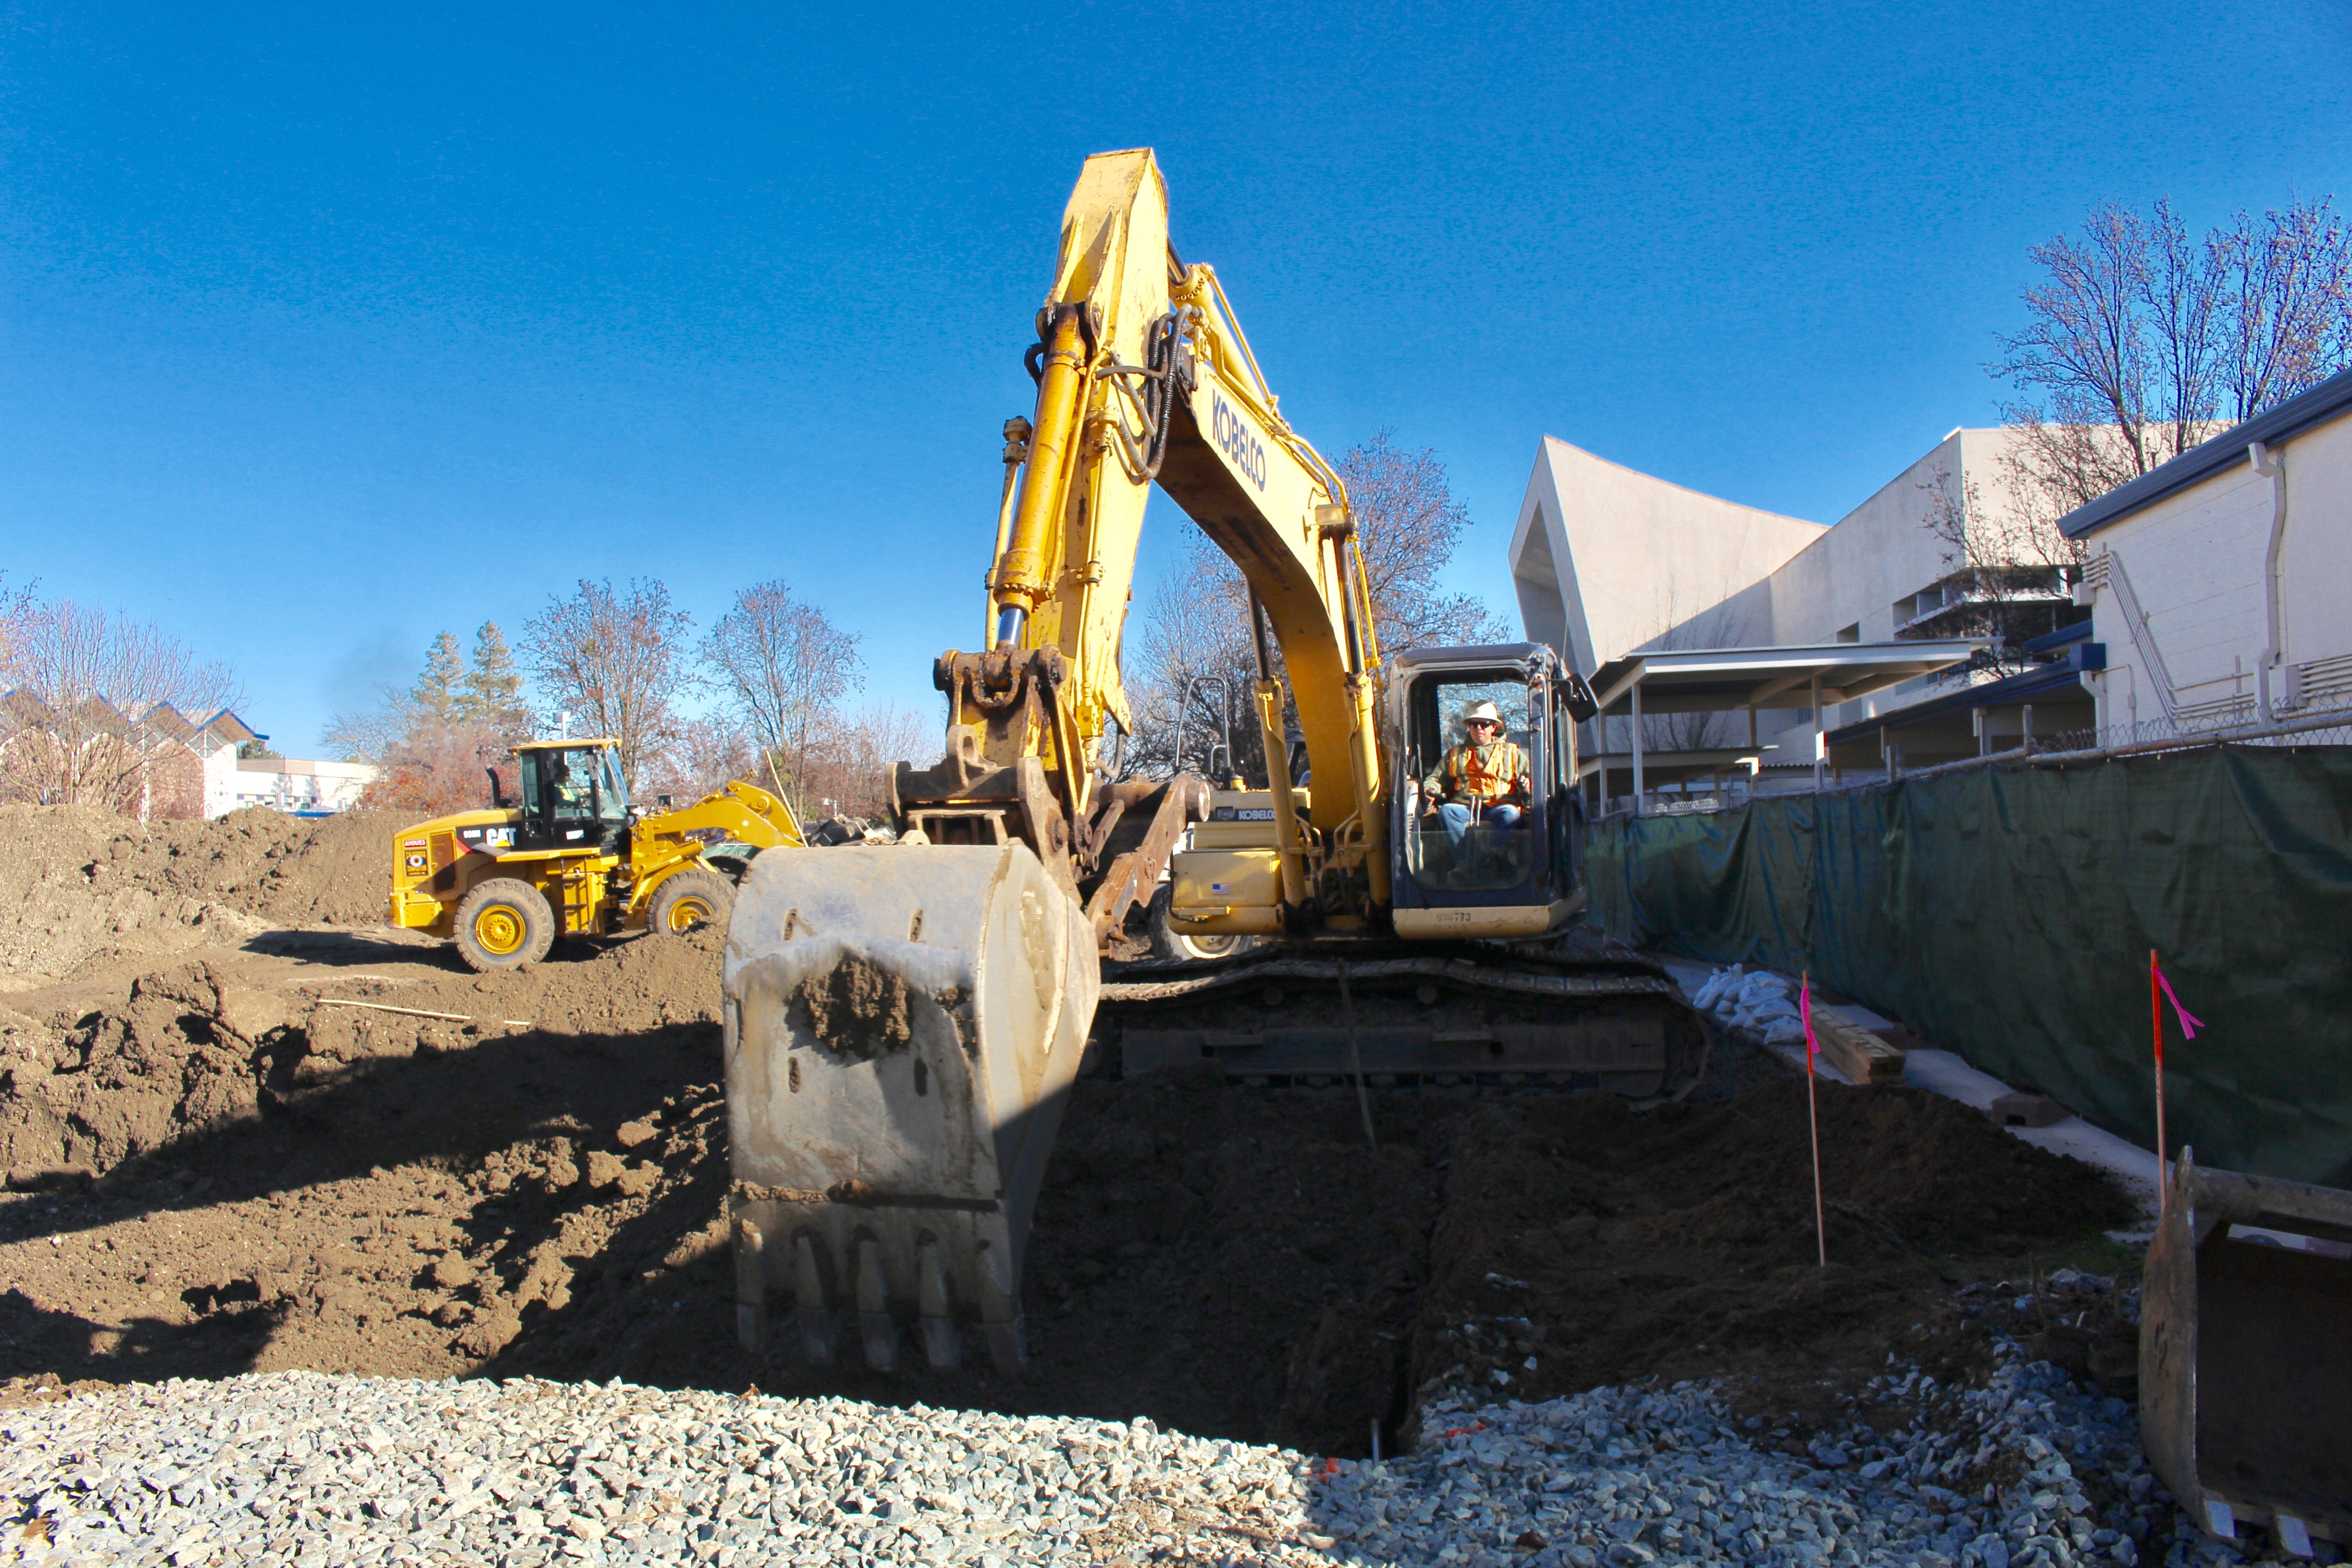 Construction on All Student Center continues, creating opportunities for students